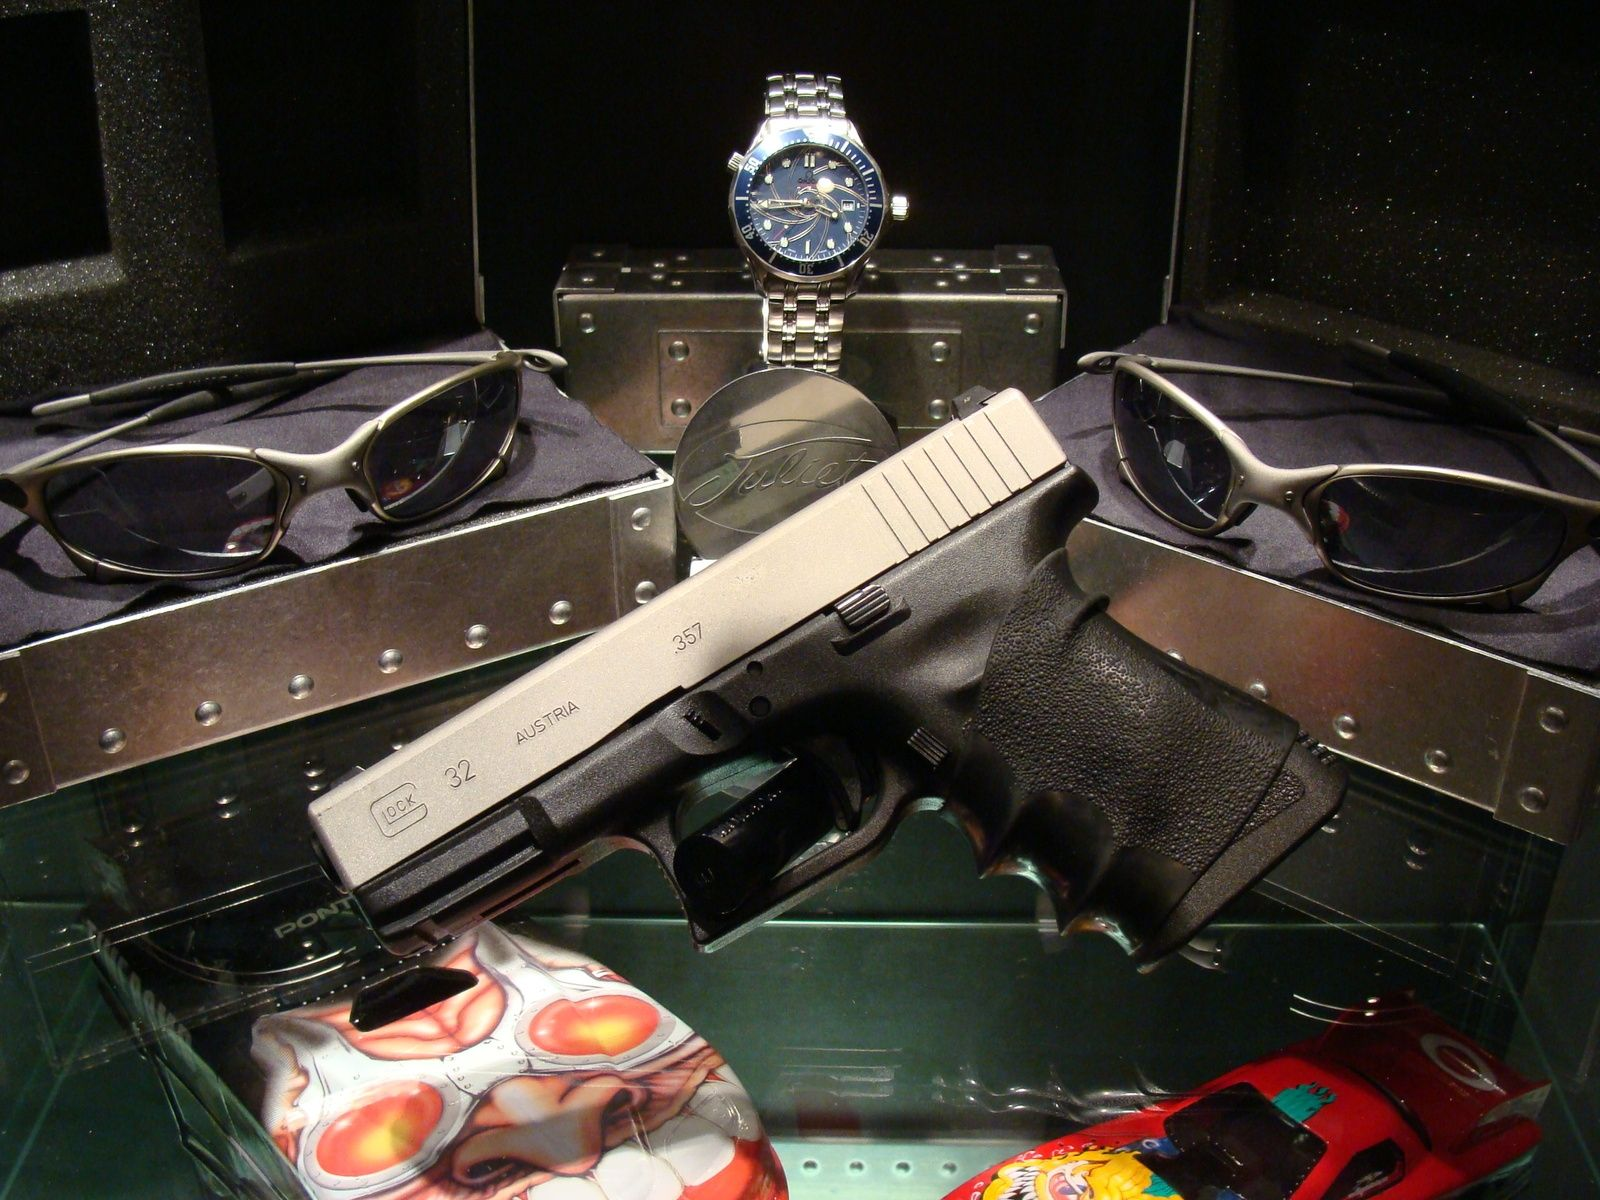 GLOCK Ti-02, And Other Ti-02 Collection  (XMAN) - DSC04866.JPG